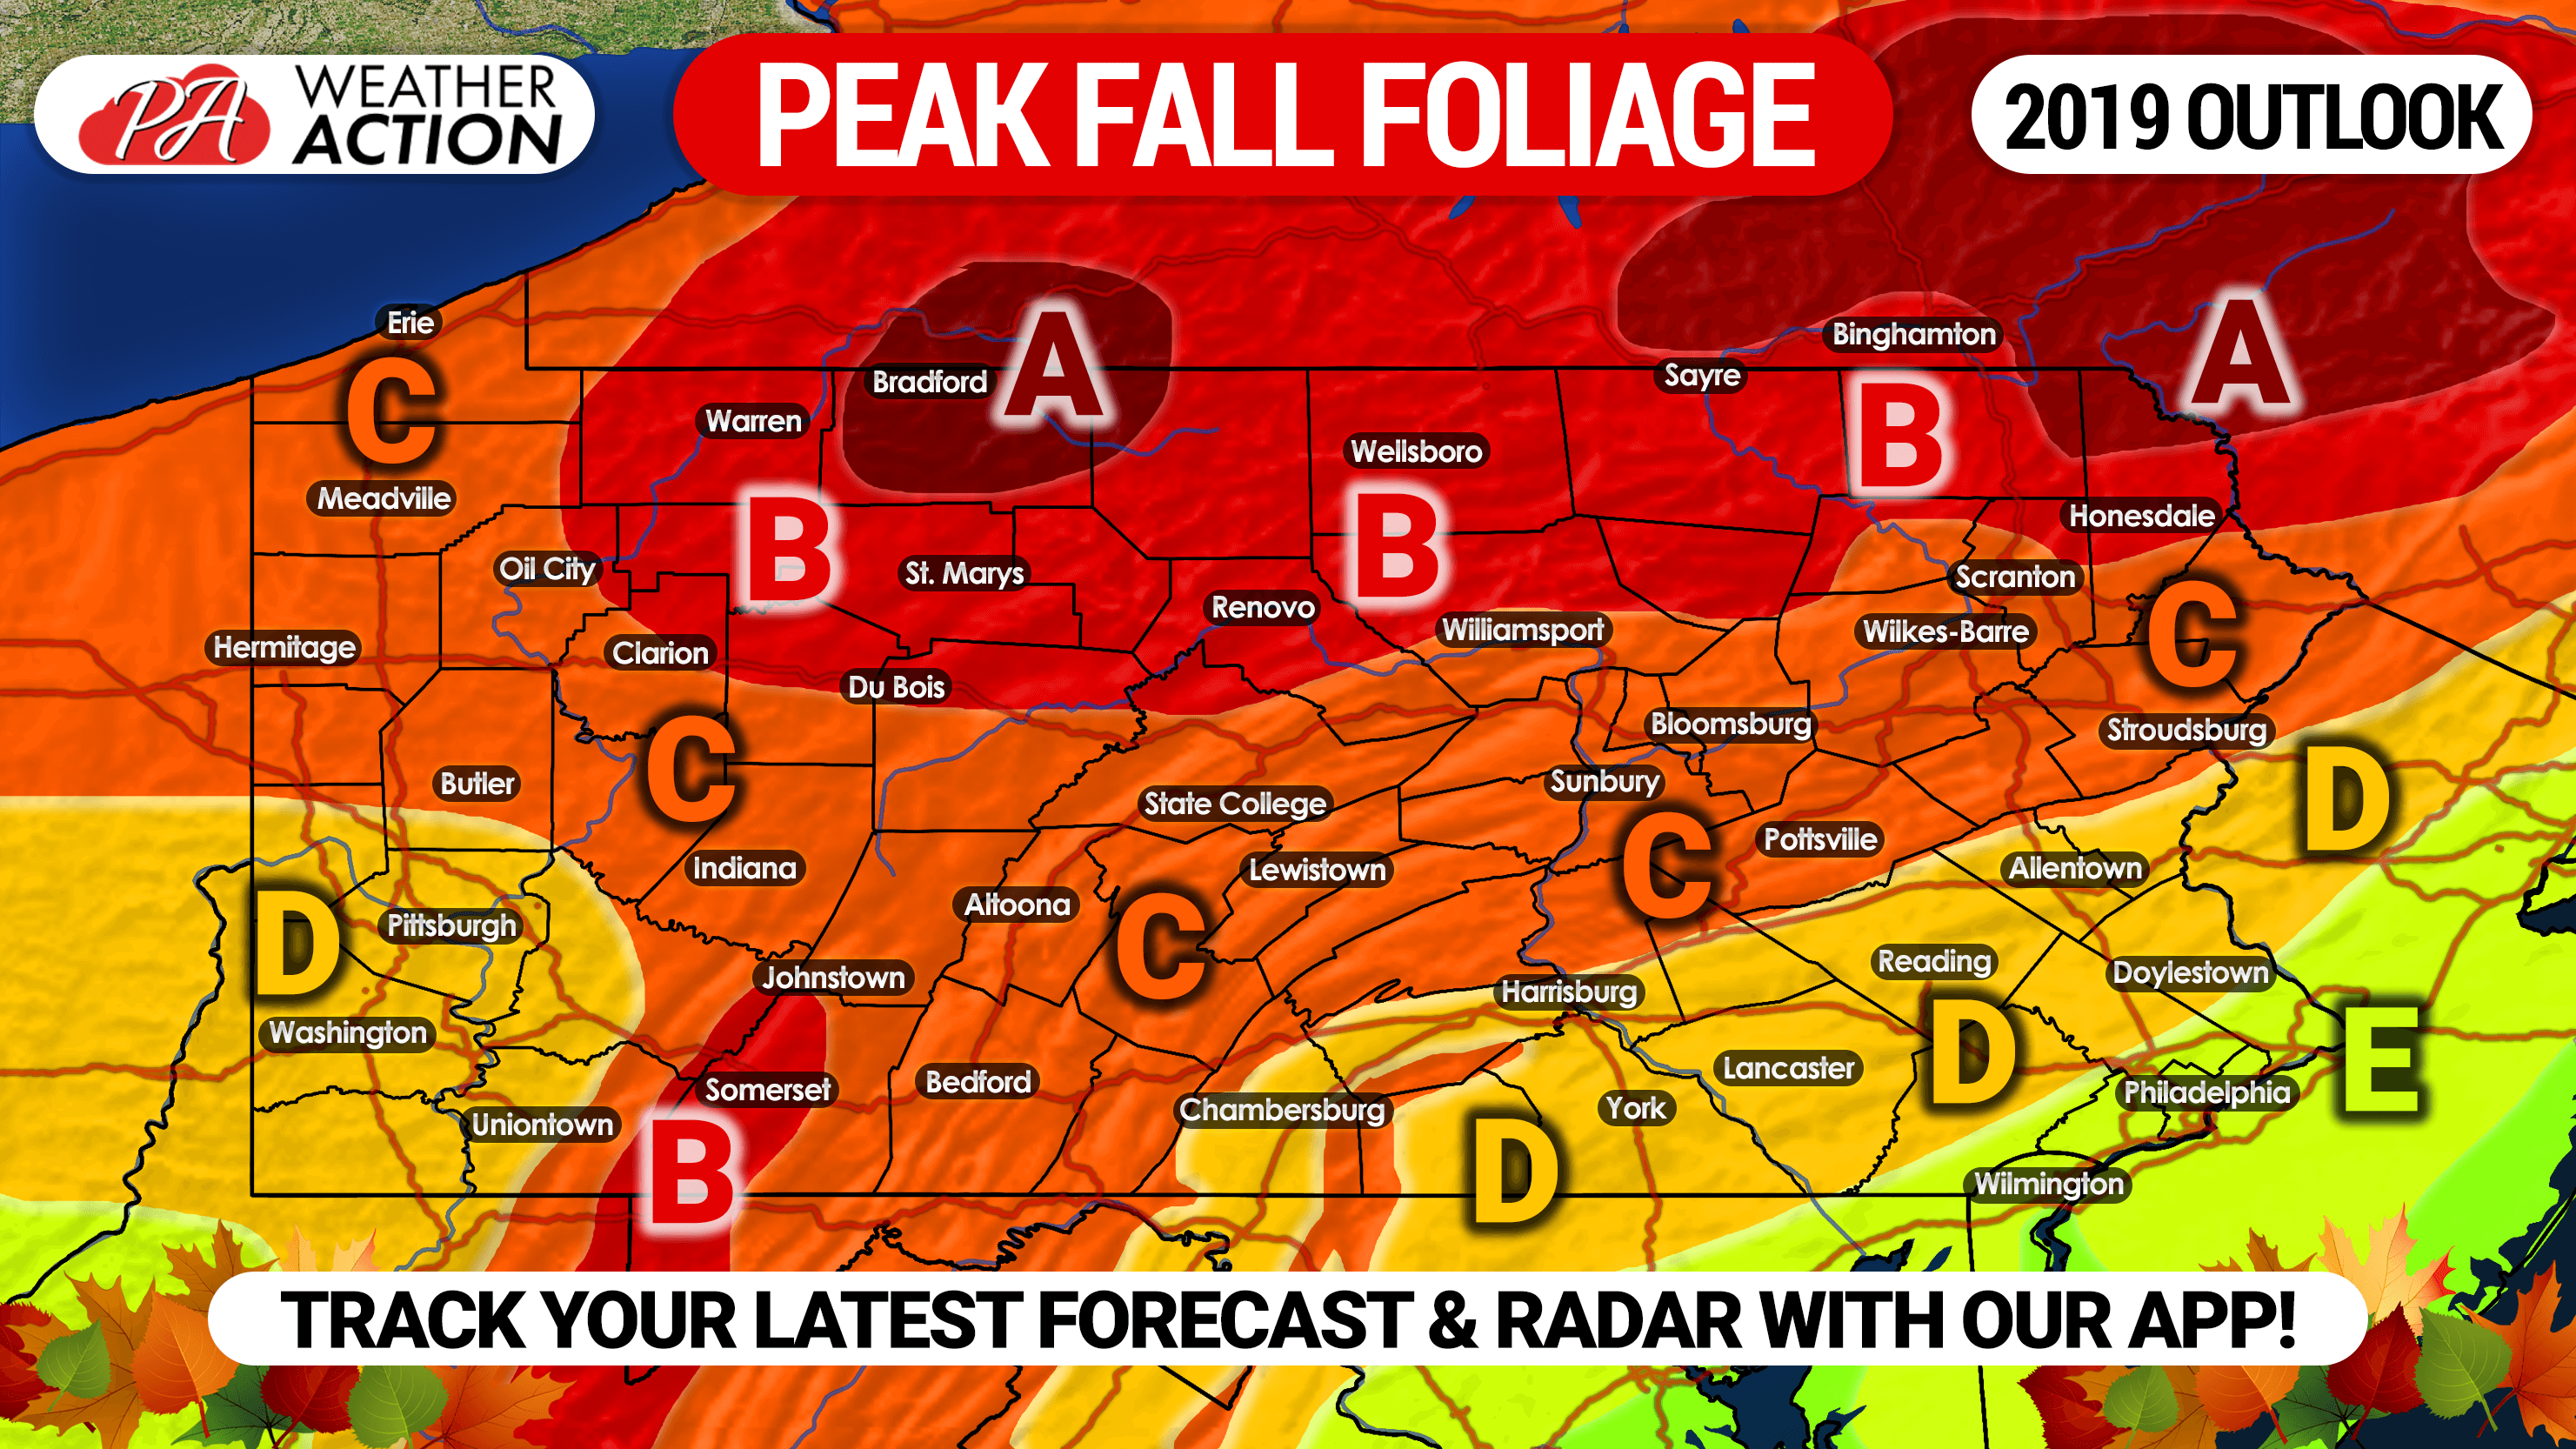 Picture of: 2019 Fall Foliage Outlook Expected Peak Times In Pennsylvania Pa Weather Action